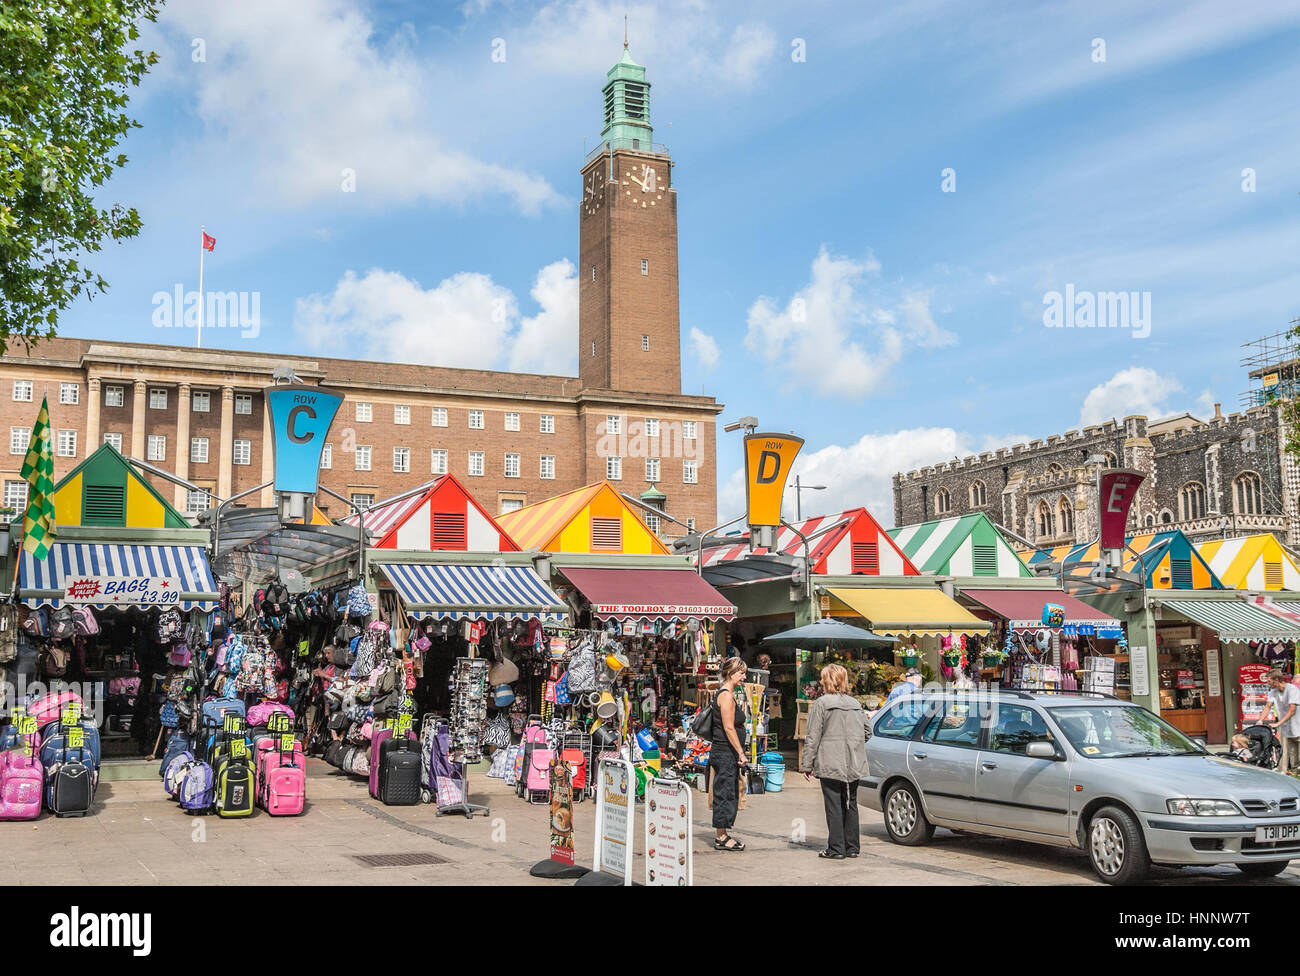 Marketstalls at the Market Square of Norwich with the City Hall in the background, Norfolk, England, UK. |   Der - Stock Image